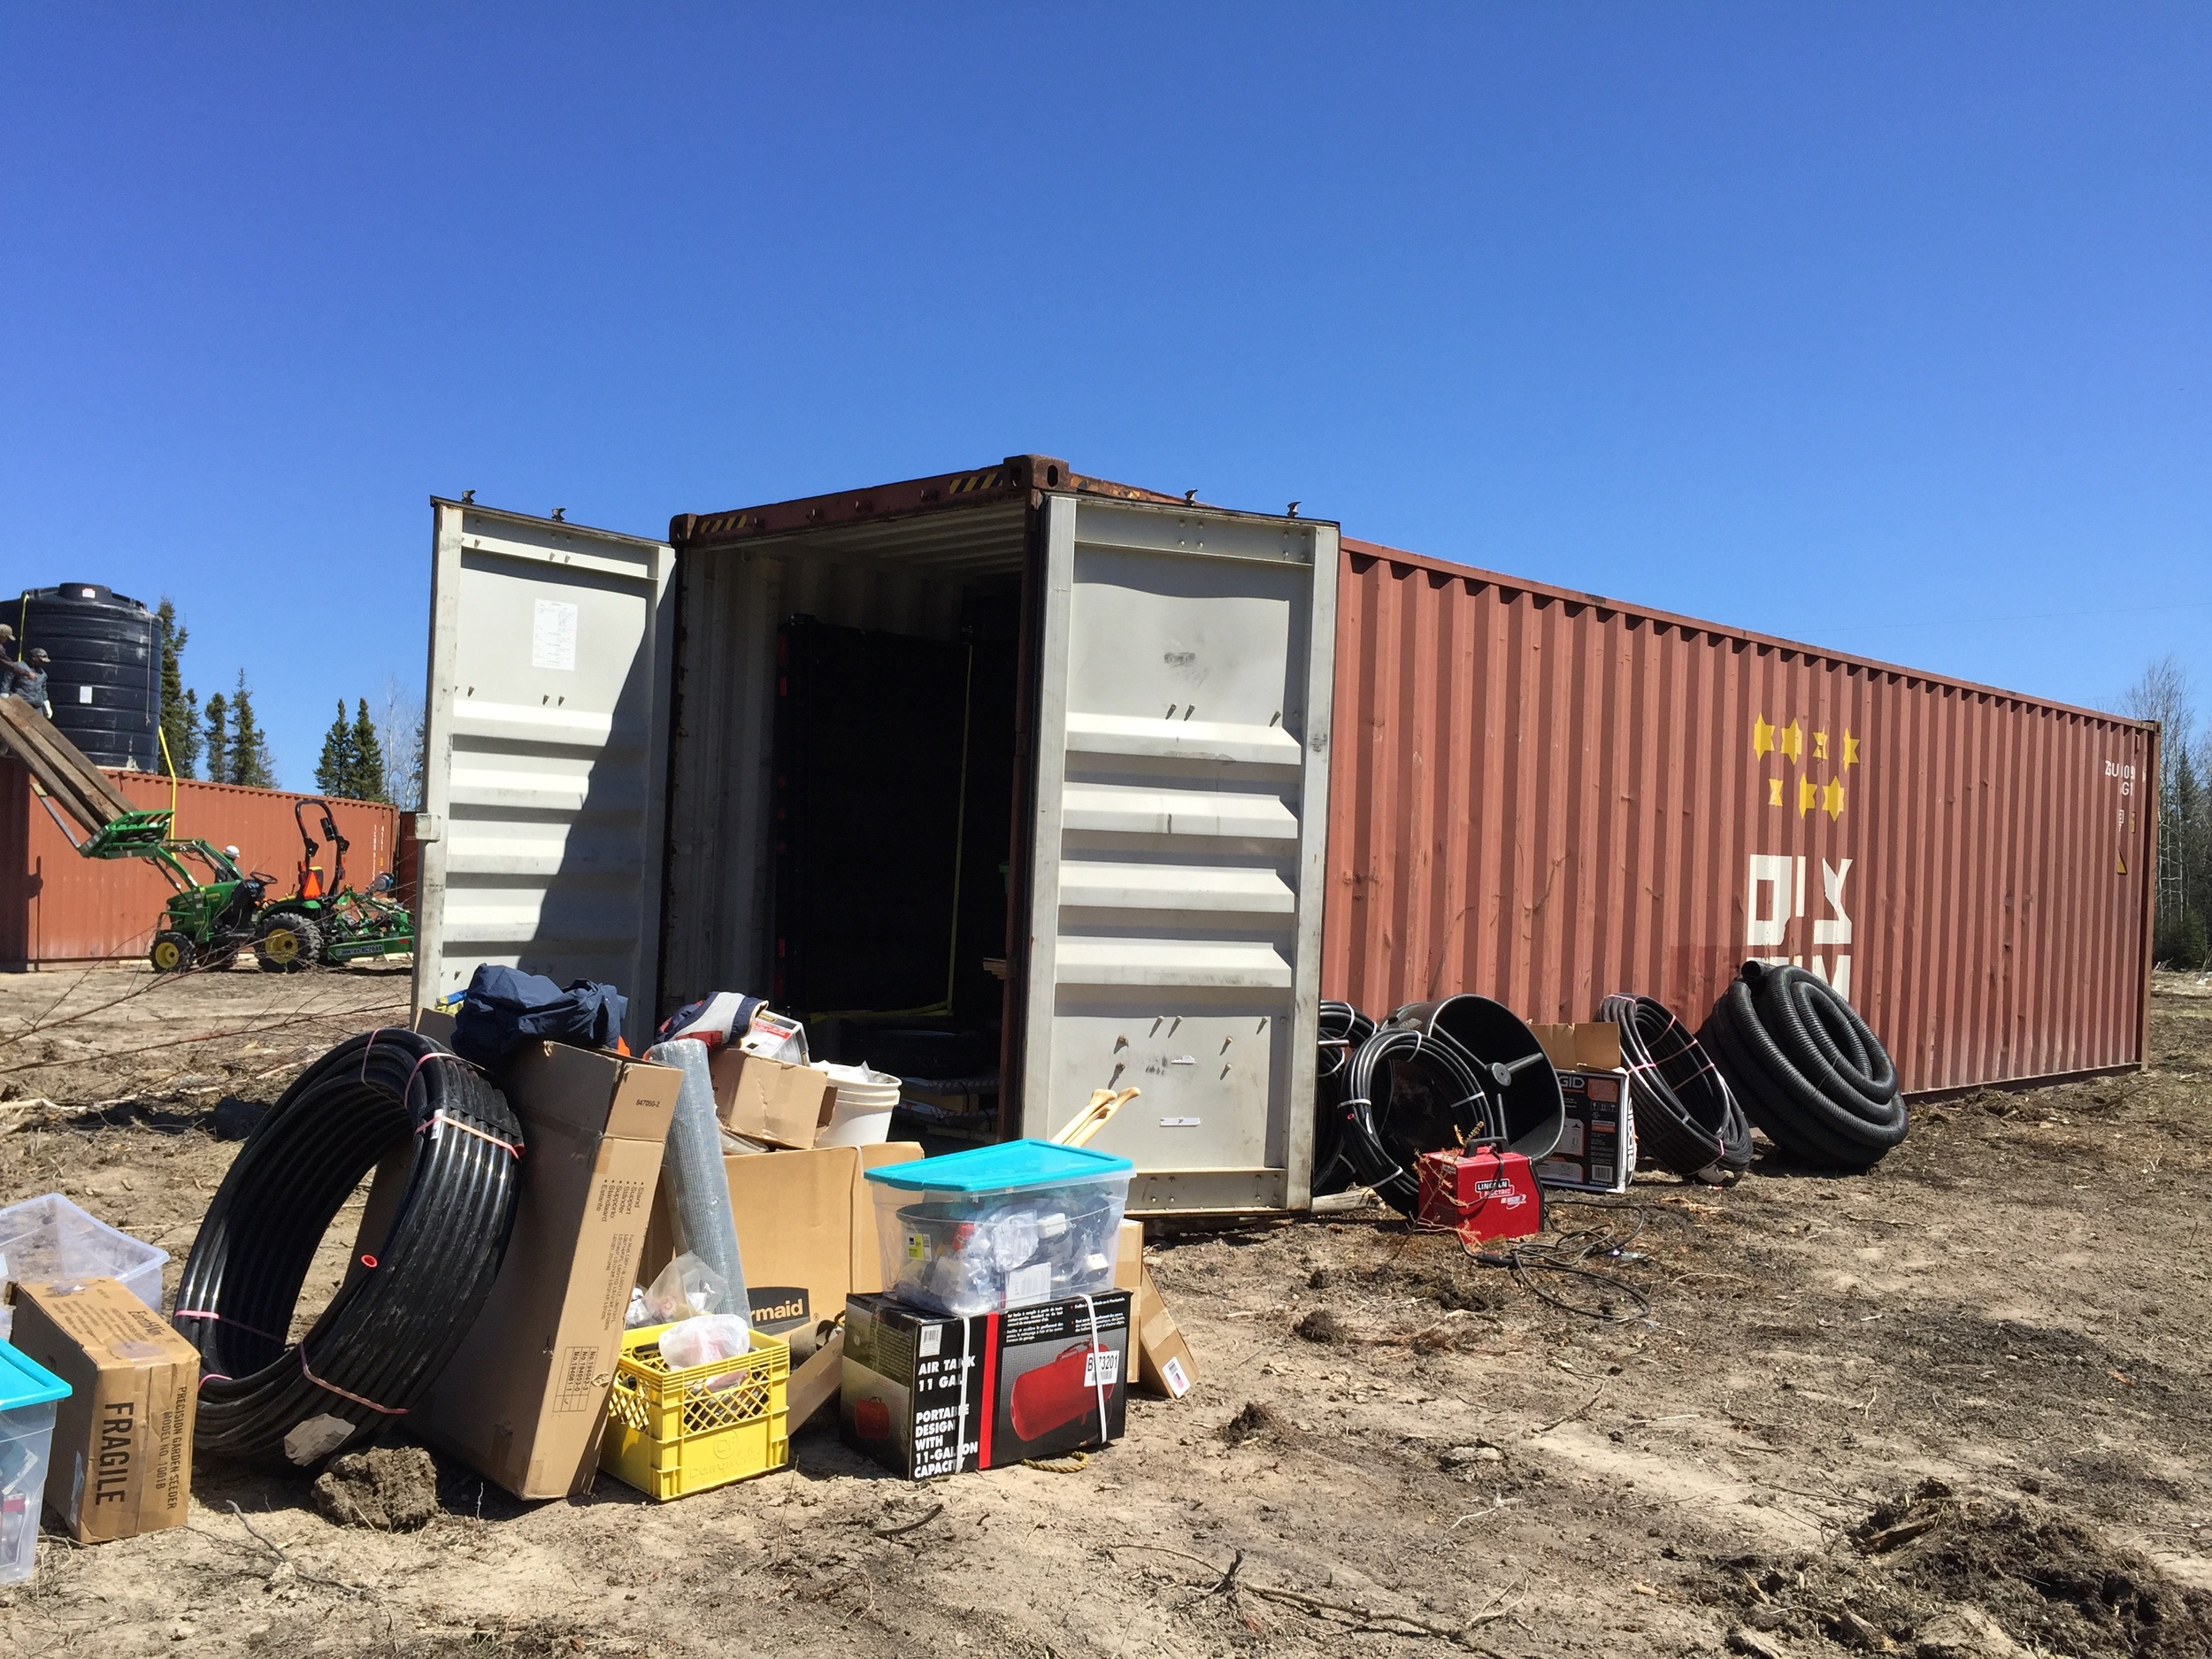 Unpacking the shipping container.